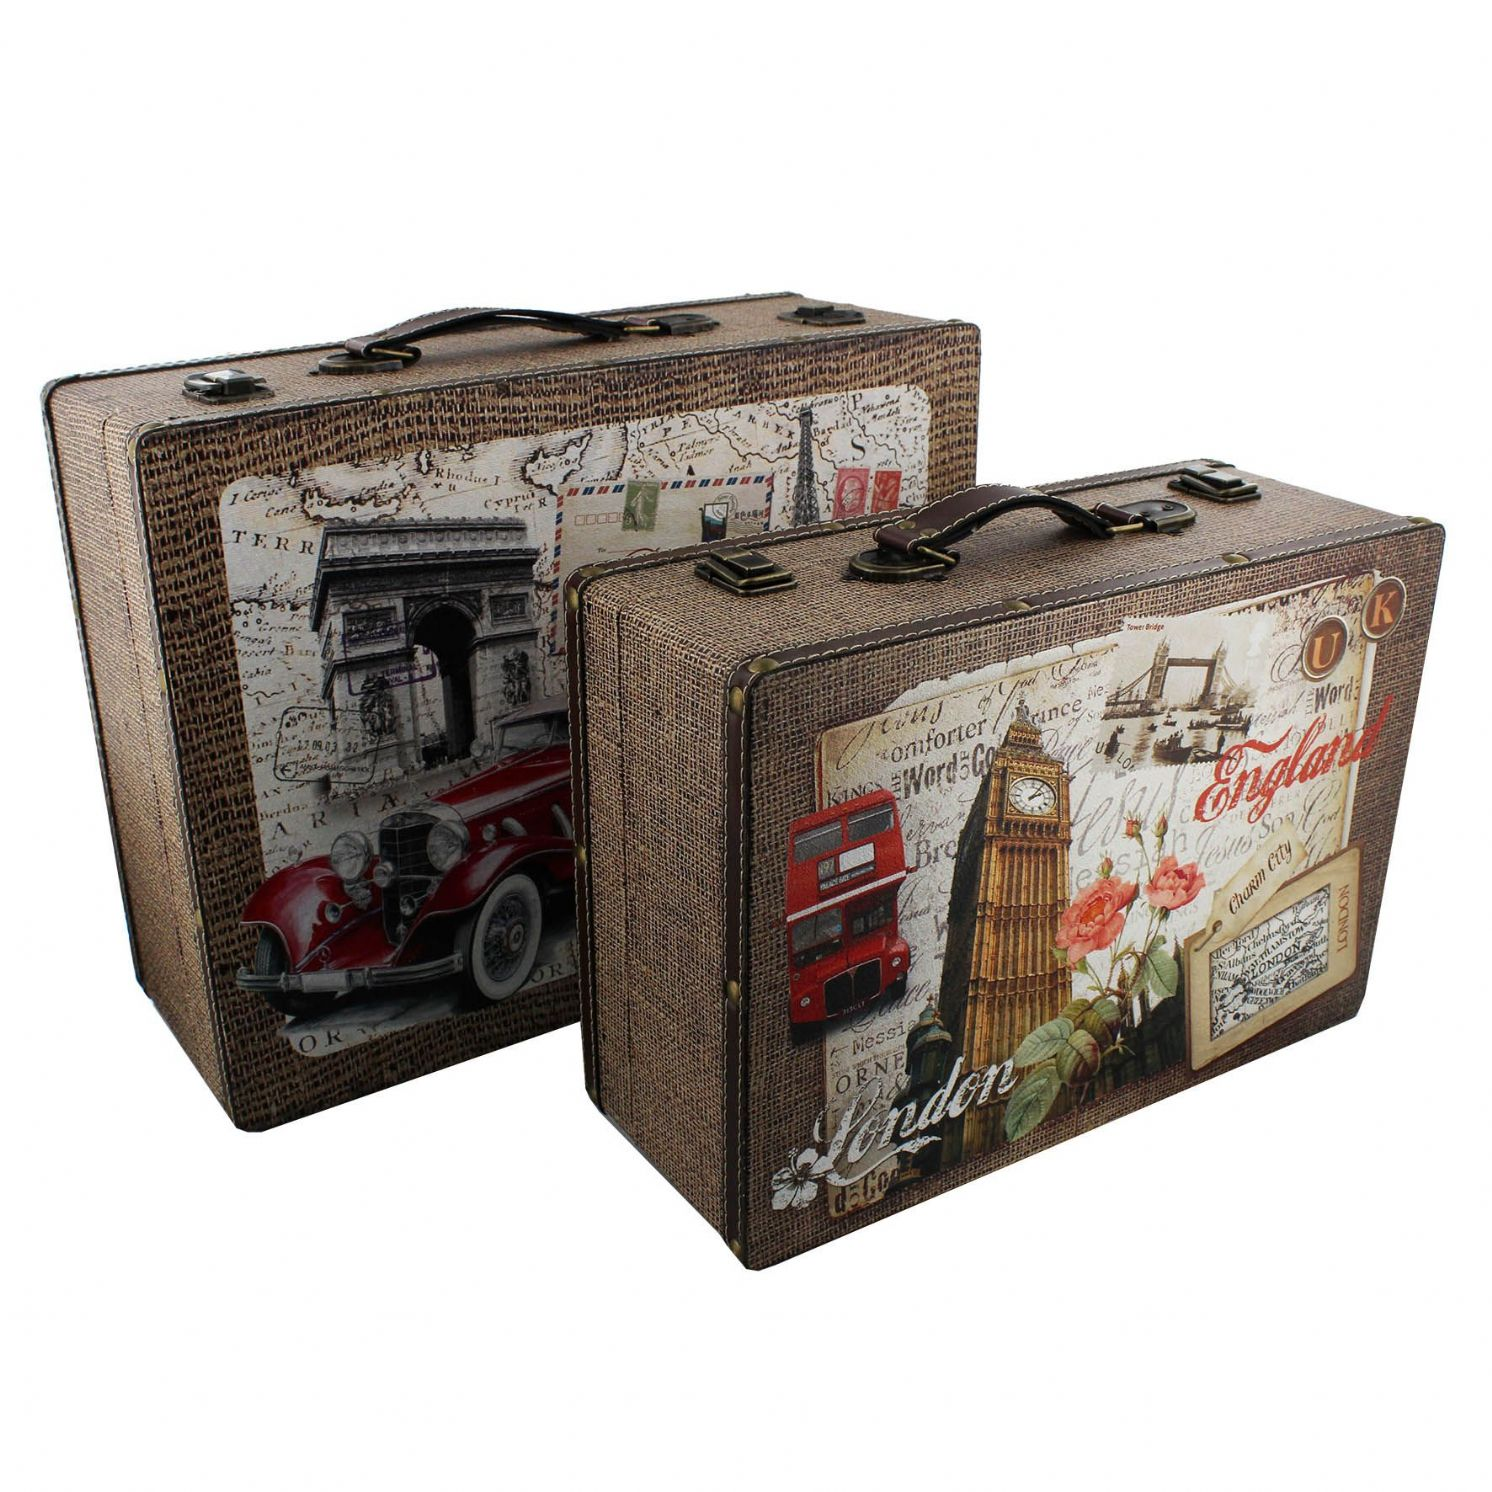 Decorative Boxes Uk: Storage Boxes Home Office 0.34, Asian Home Gourmet